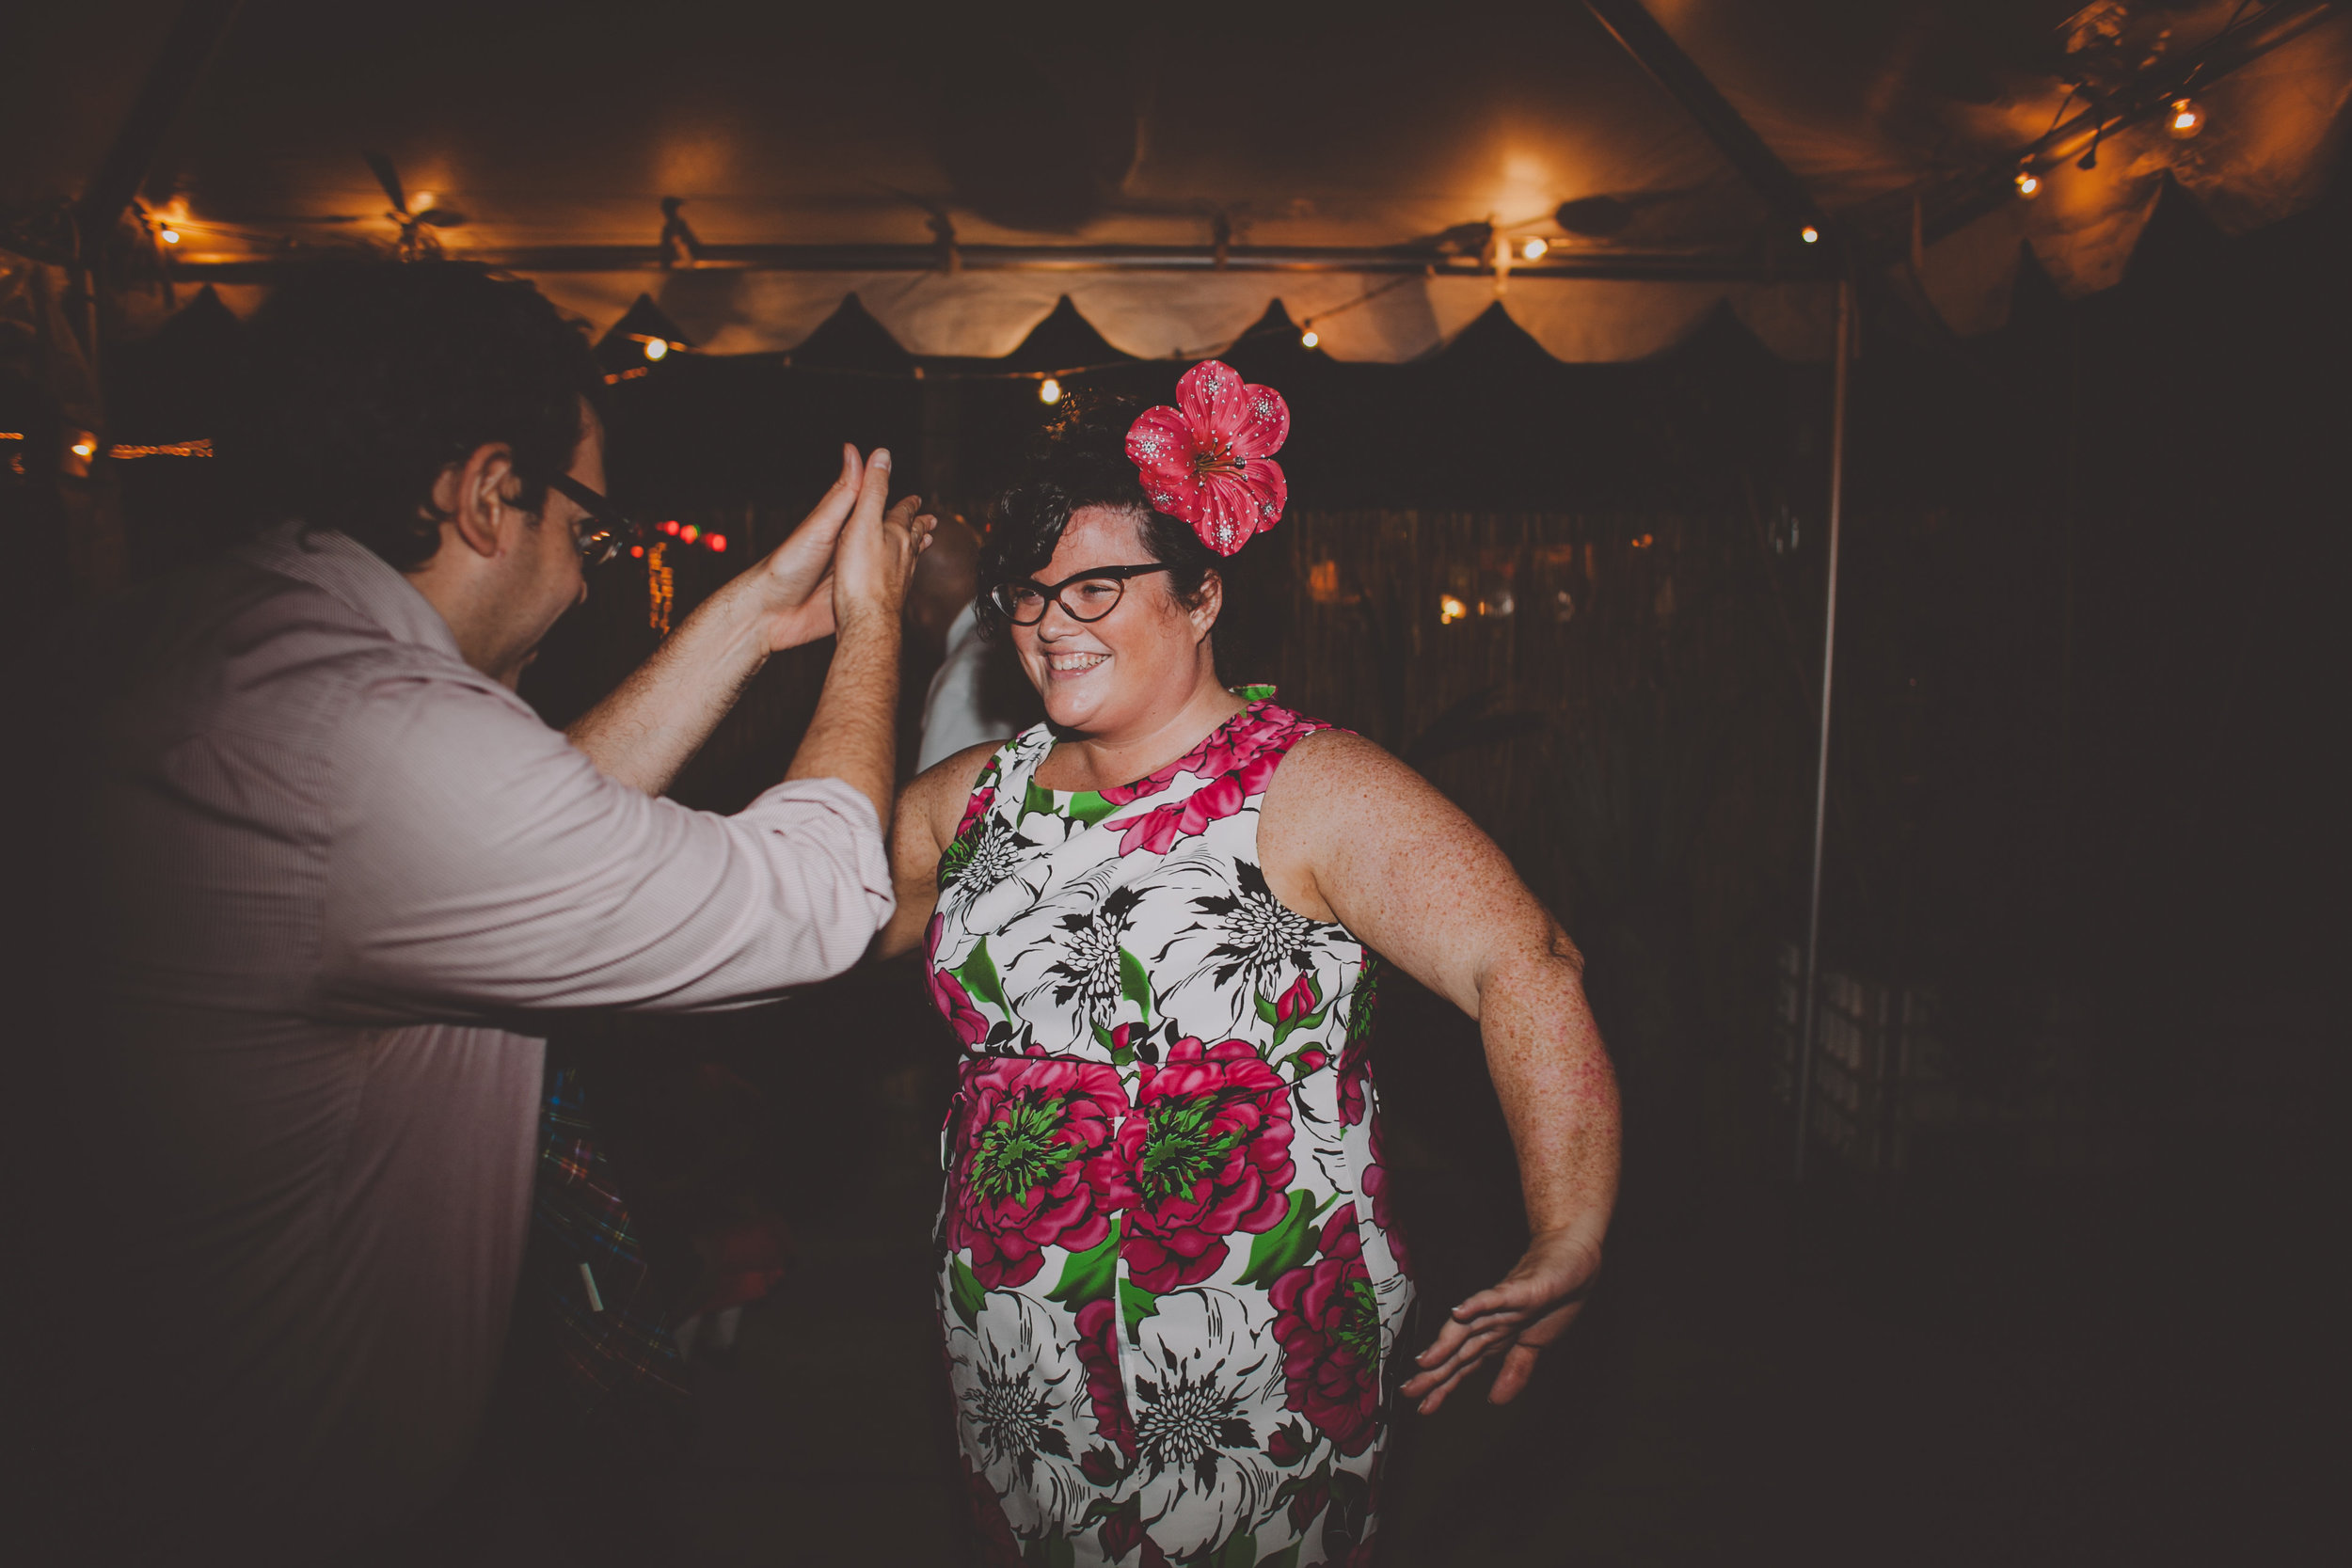 Robertas_Bushwick_Wedding_Tiki_Photography352.JPG